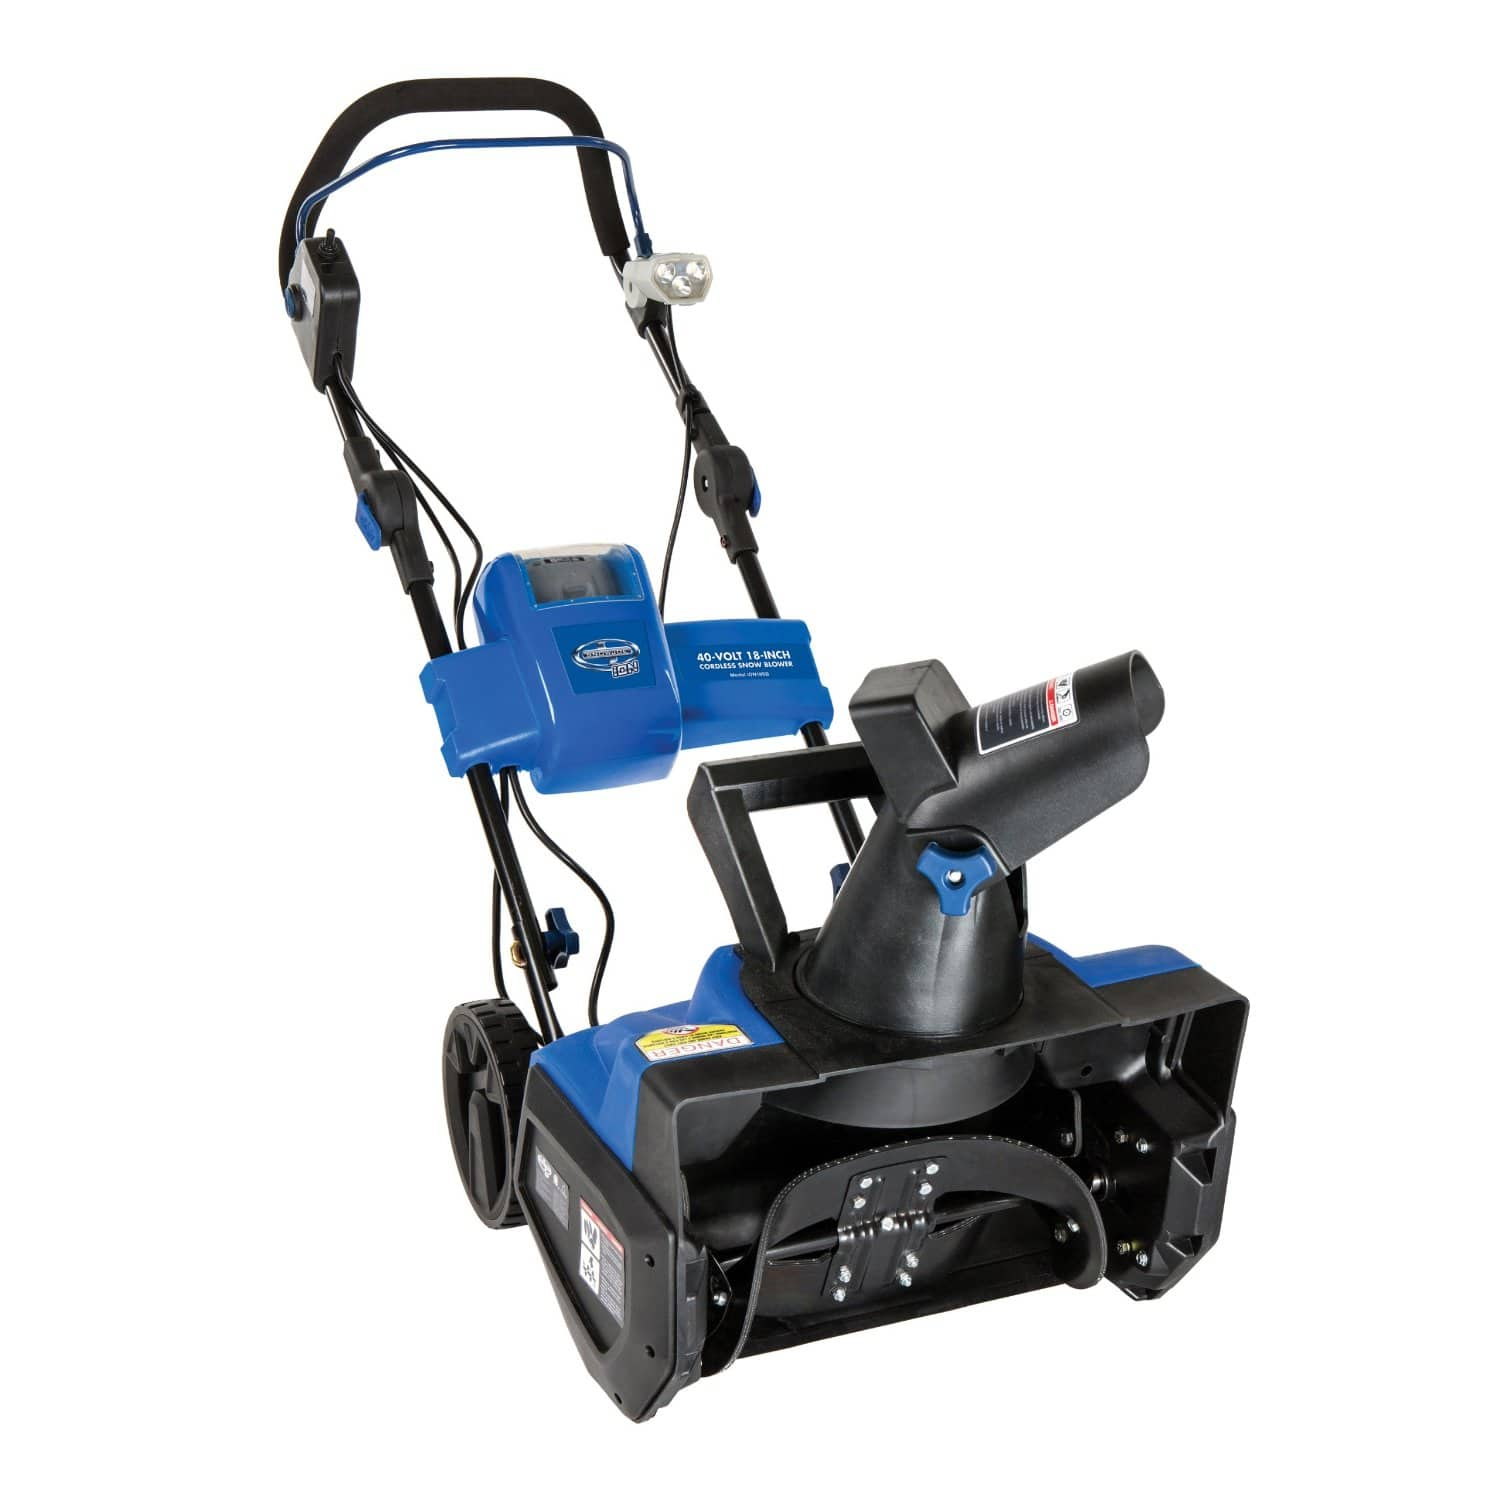 """Snow Joe 40-Volt Lithium-Ion Cordless 18"""" Single Stage Brushless Snow Blower $211 + Free Shipping"""